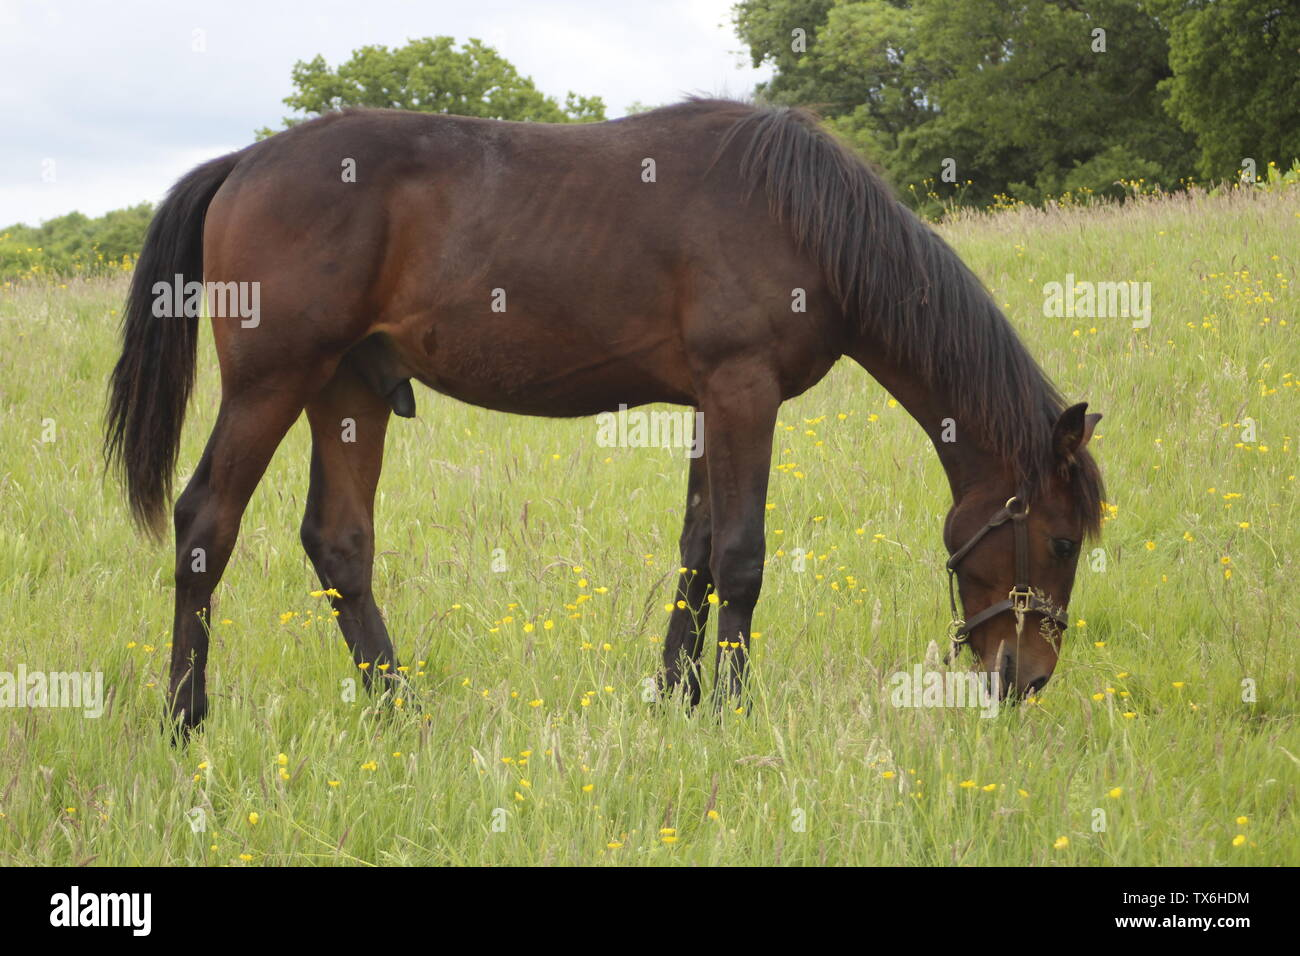 Bay Horse Grazing in Field - Stock Image